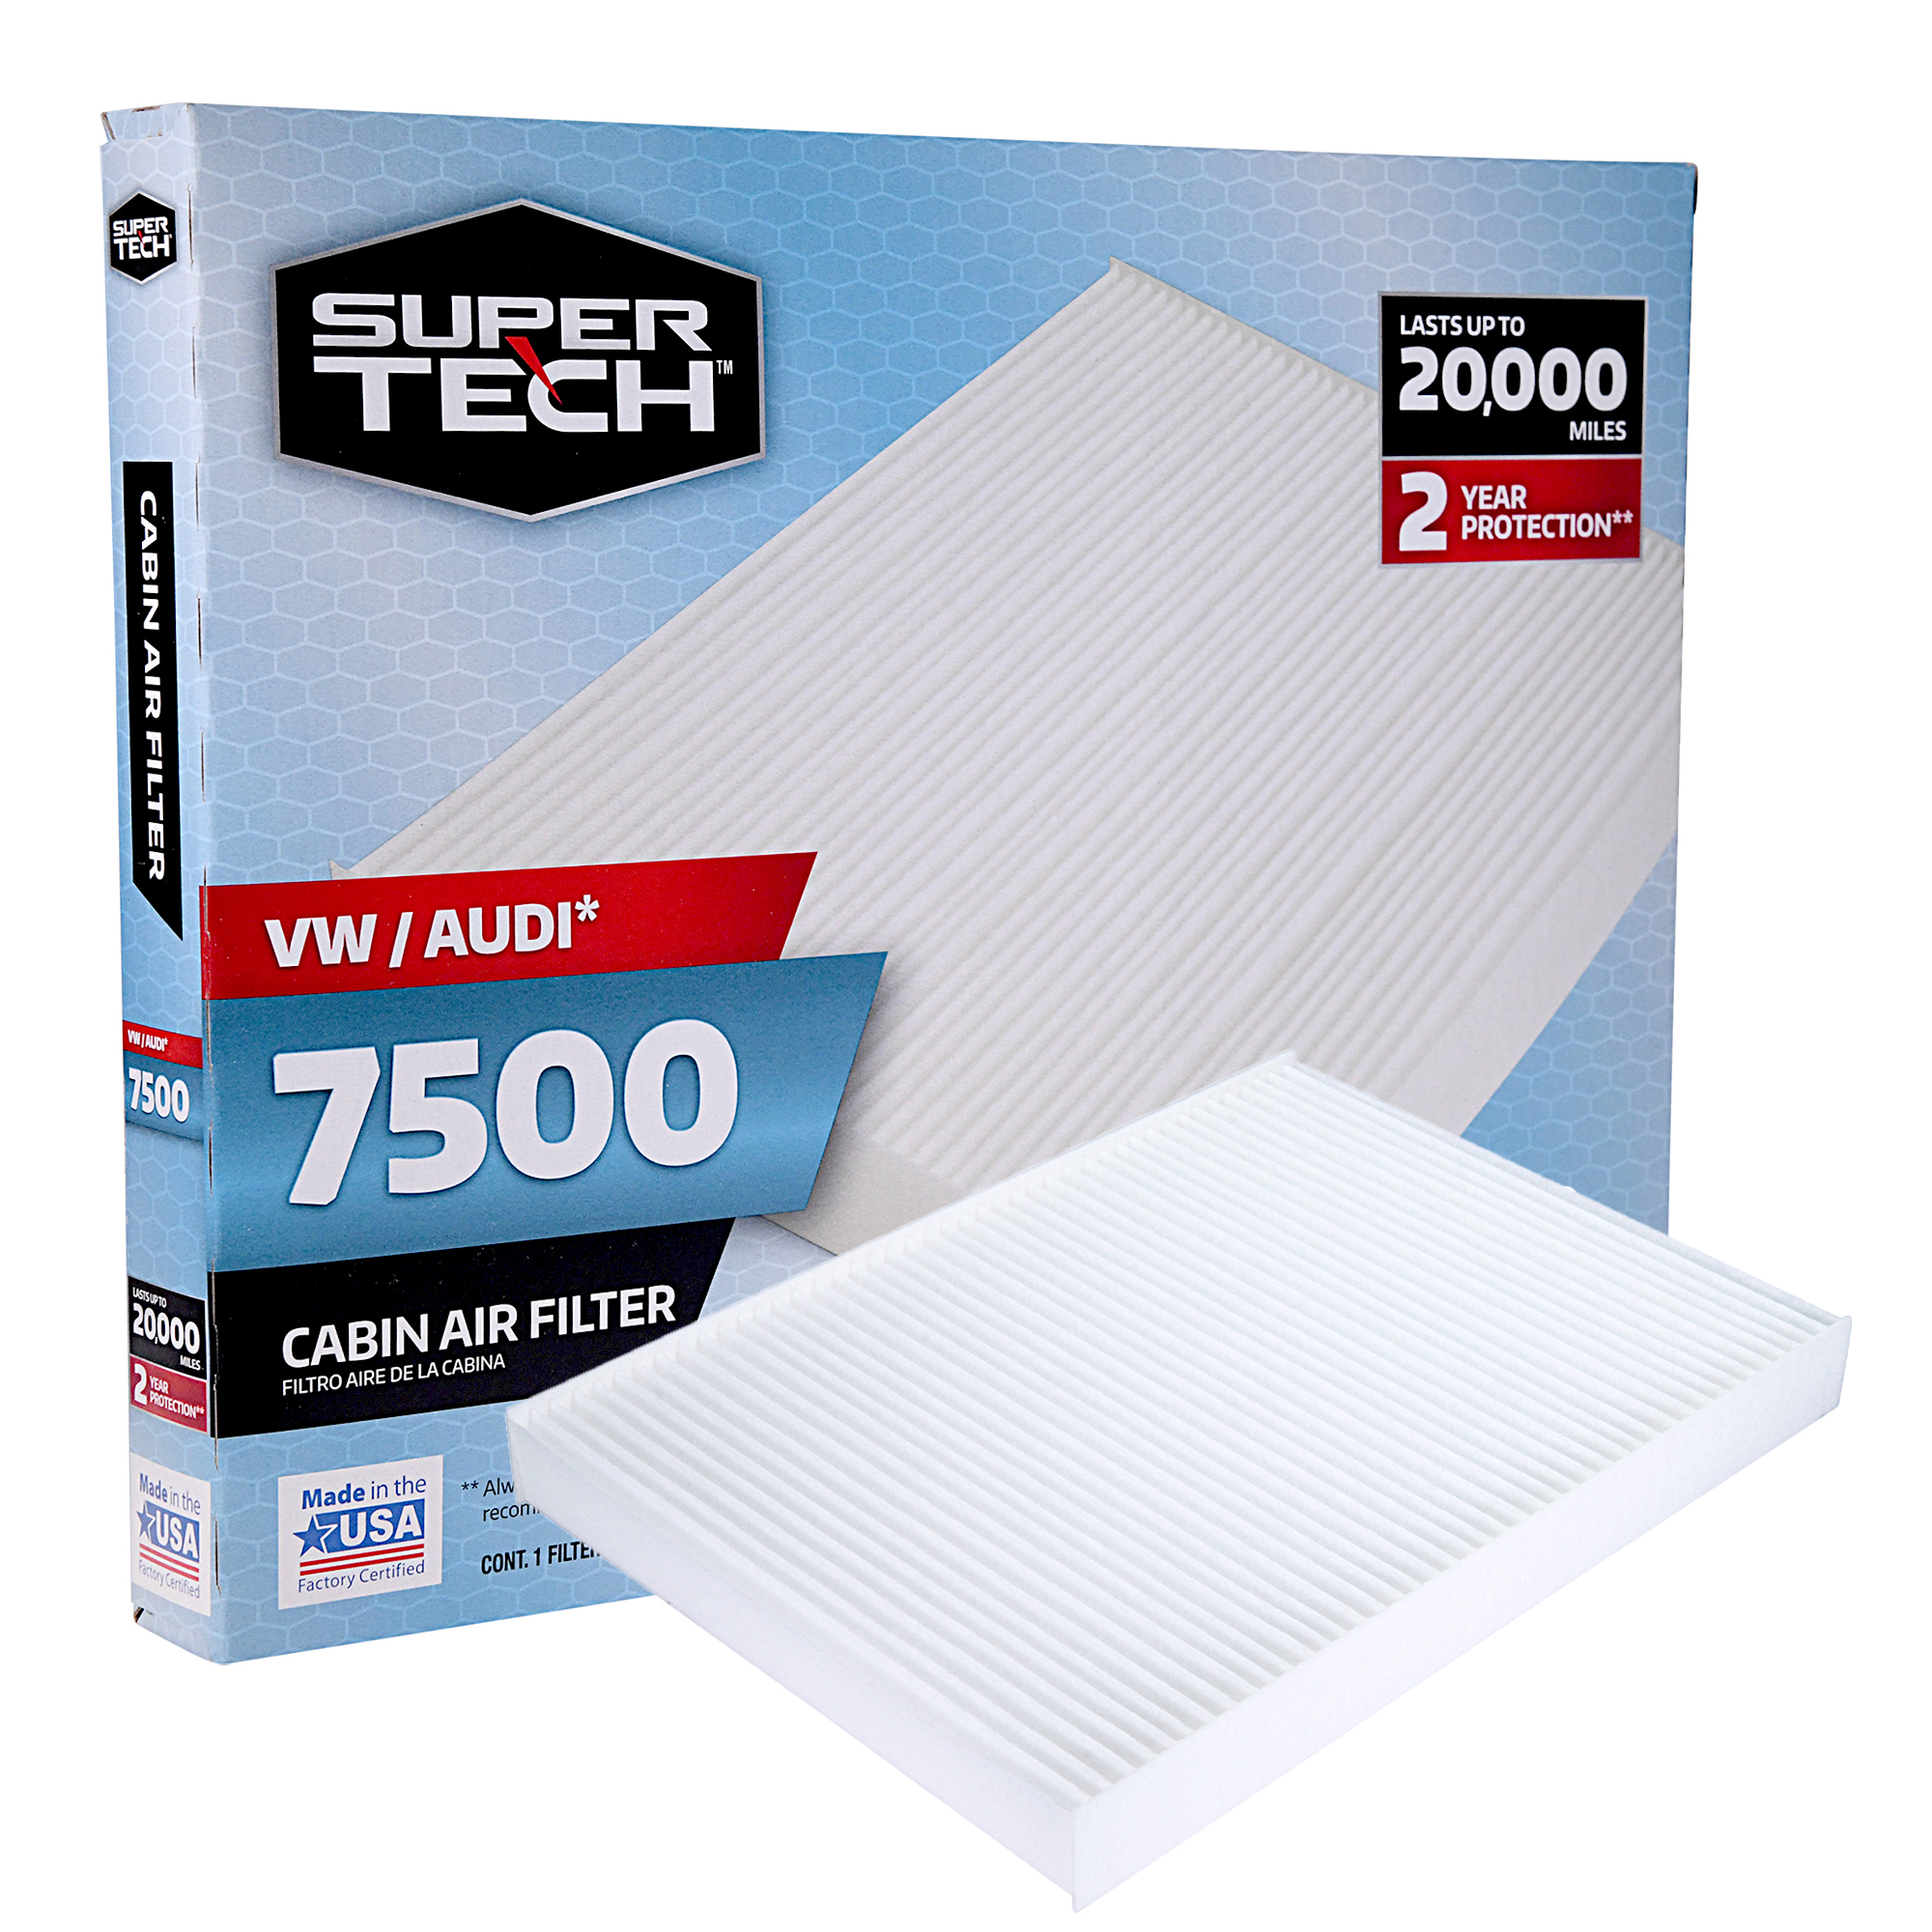 SuperTech Cabin Air Filter 7500, Replacement Air/Dust Filter for VW / Audi